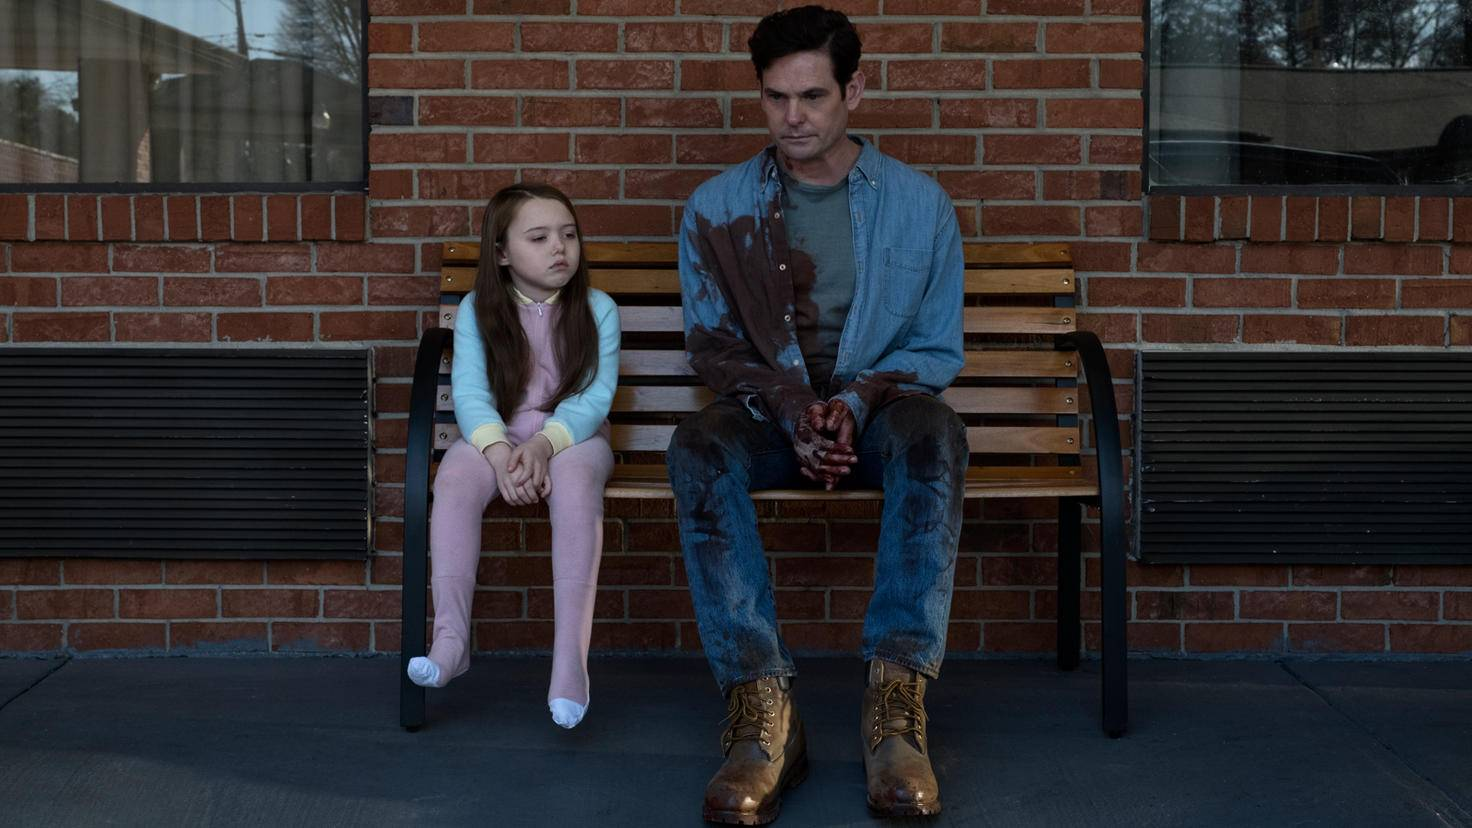 The Haunting of Hill House-S1E5-Violet Mcgraw-Henry Thomas-Steve Dietl-Netflix